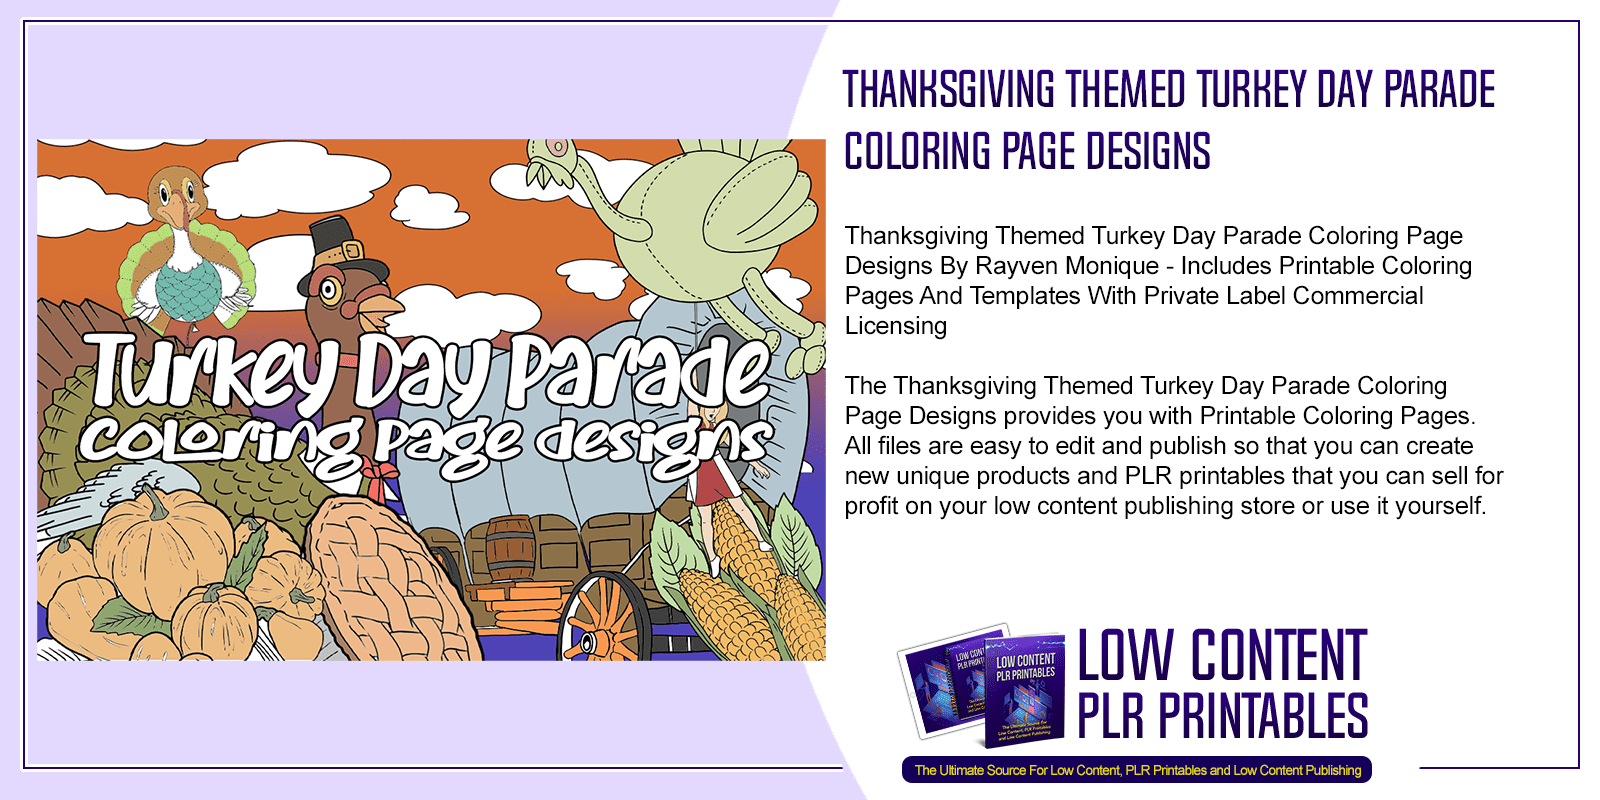 Thanksgiving Themed Turkey Day Parade Coloring Page Designs